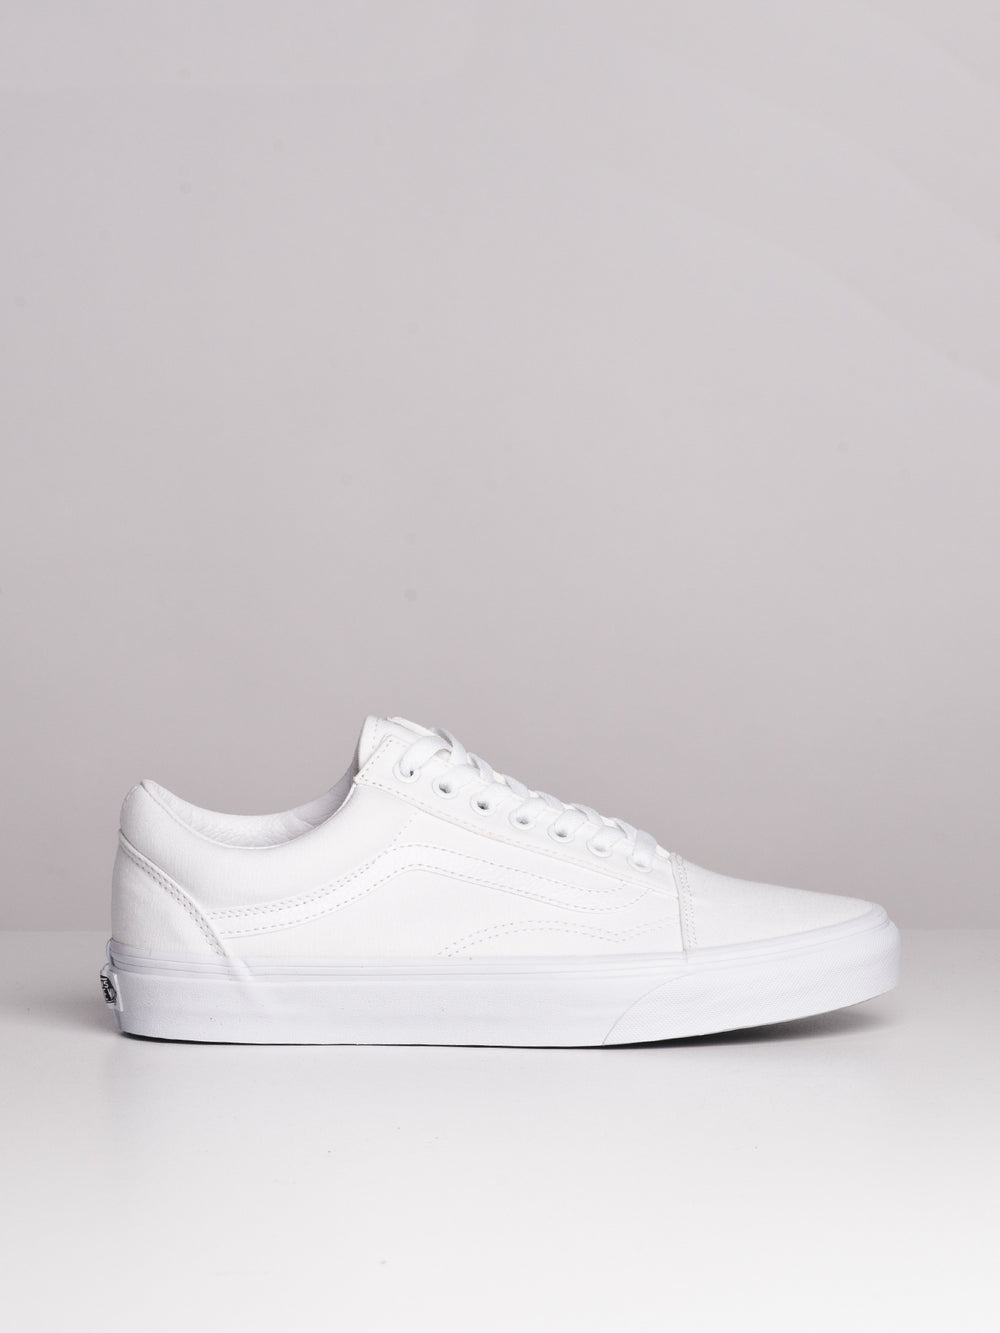 MENS OLD SKOOL TRUE WHITE CANVAS SHOES SNEAKER